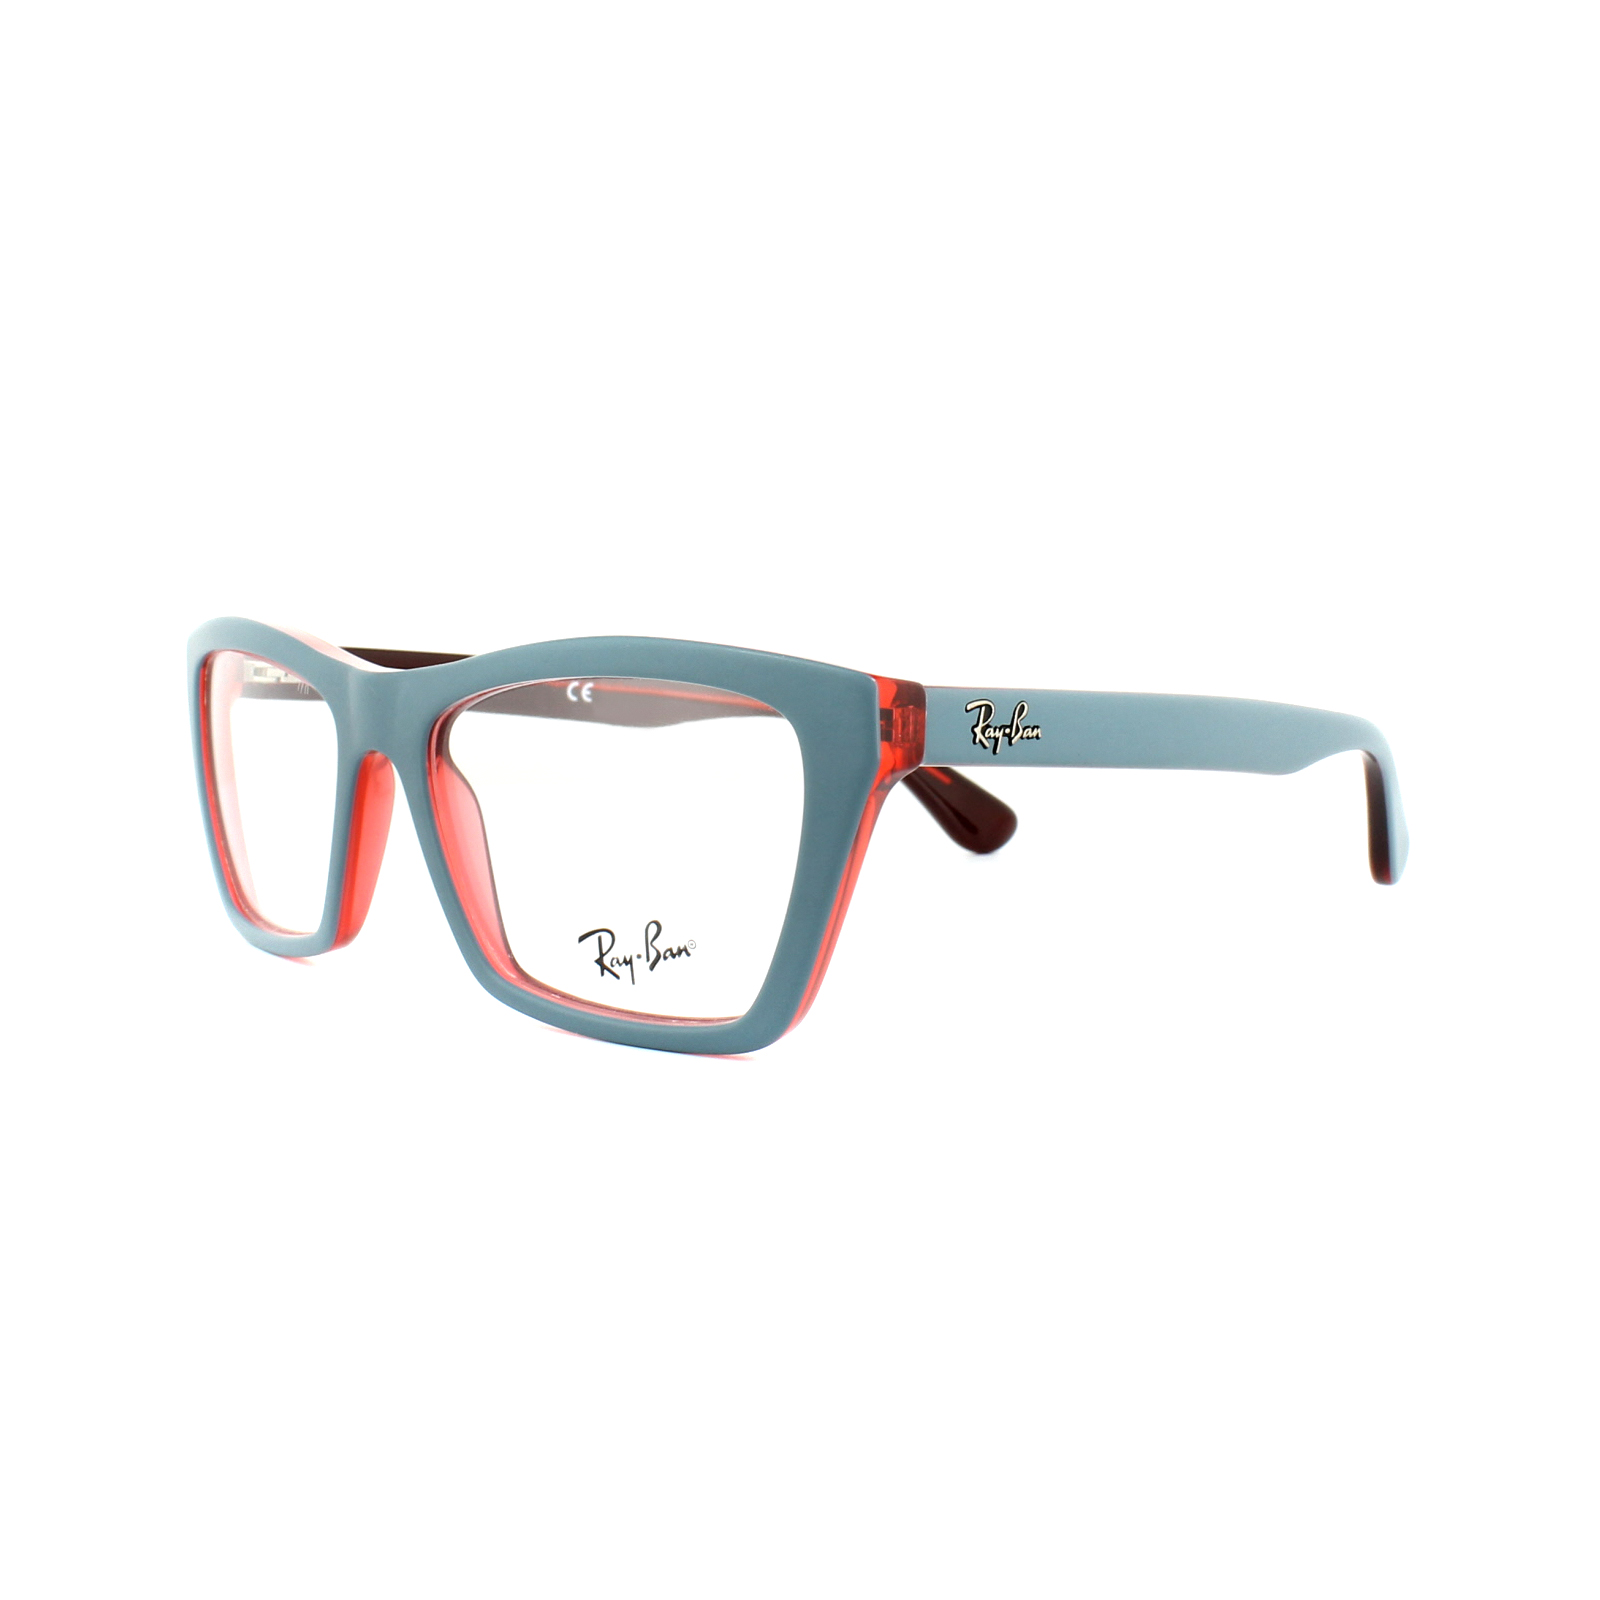 Ray-Ban Glasses Frames RX 5316 5388 Matt Oil Blue on Transparent Red ...